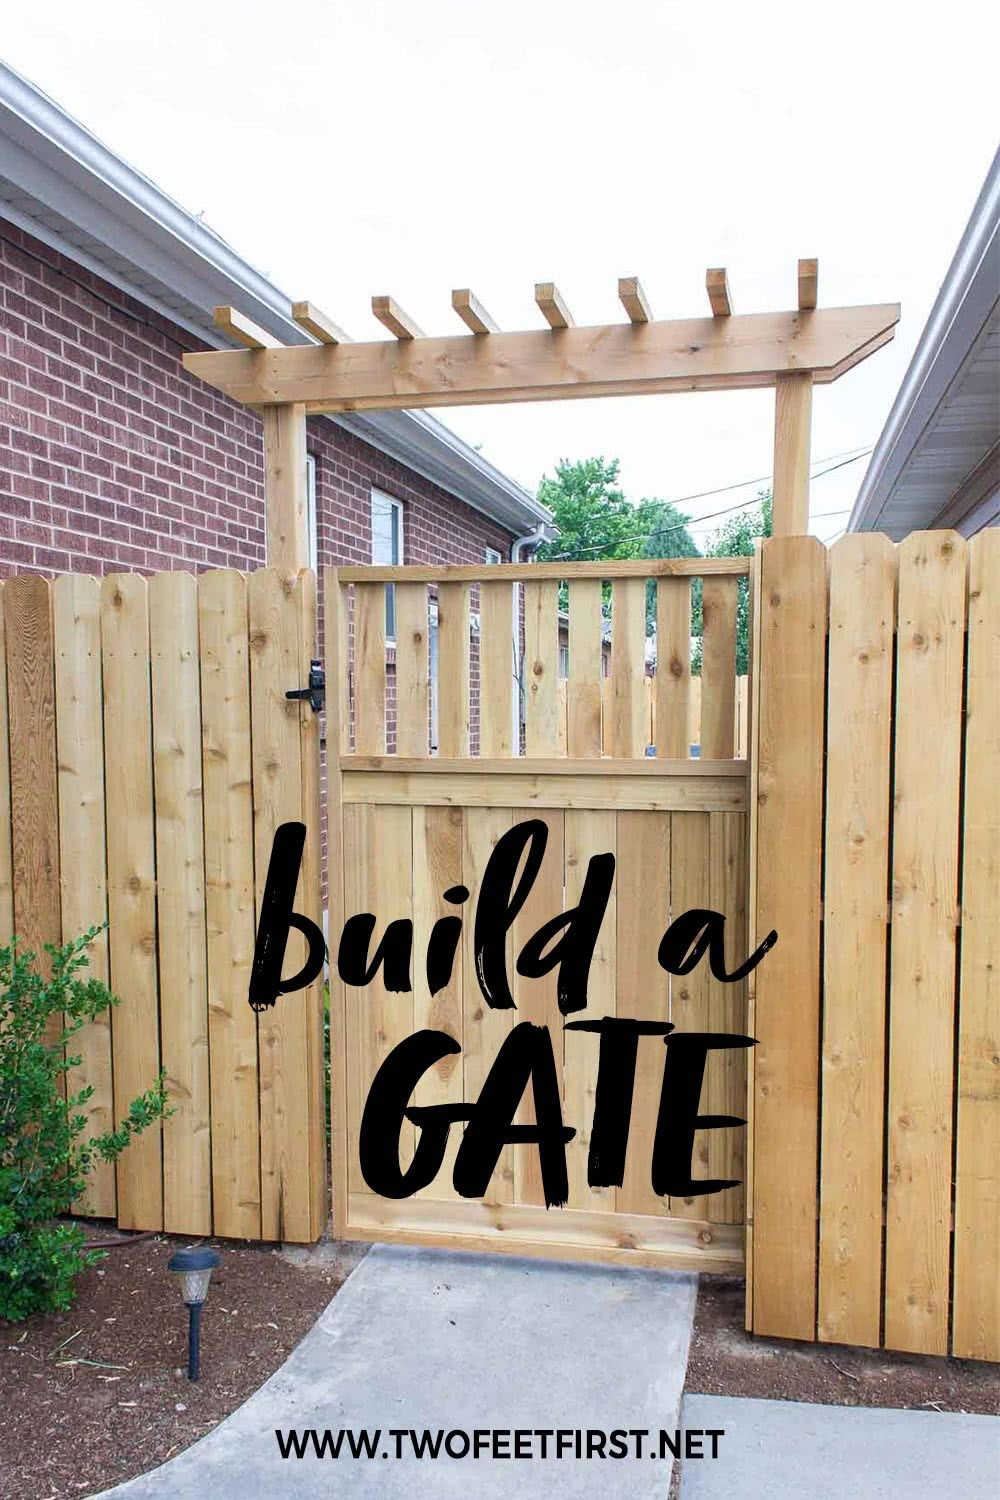 How To Build A Wooden Gate Building A Wooden Gate Building A Gate Backyard Gates